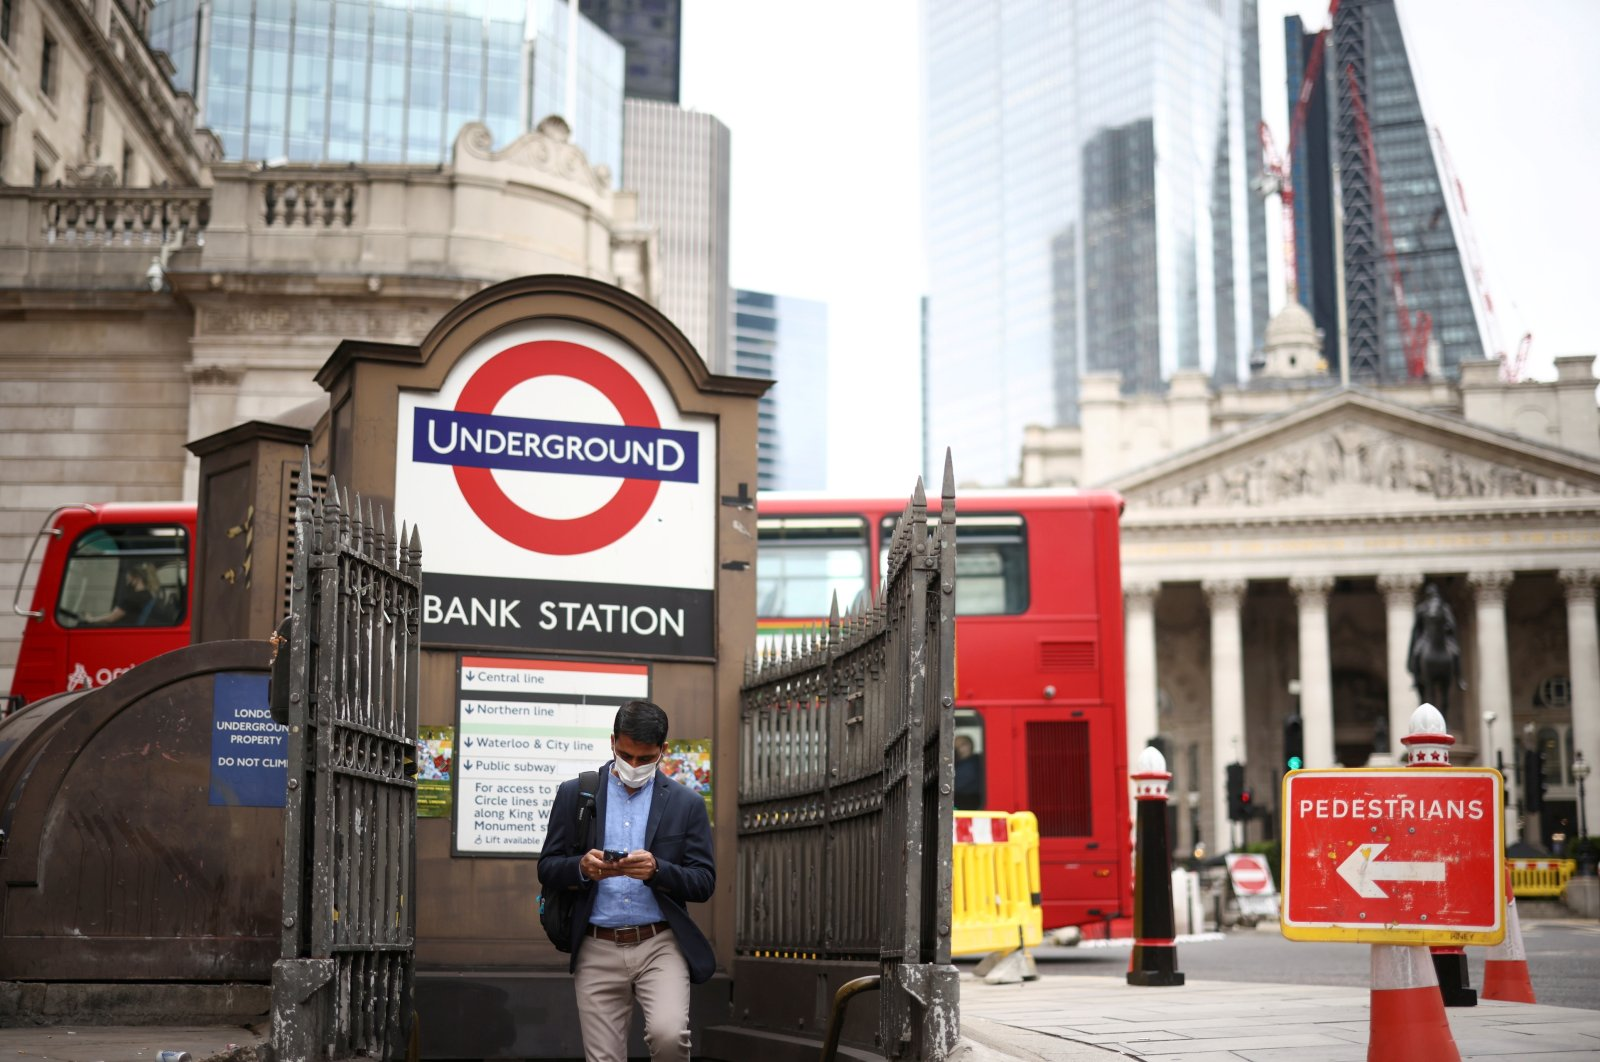 A person exits the Bank underground station in the City of London financial district in London, U.K., June 11, 2021. (Reuters Photo)